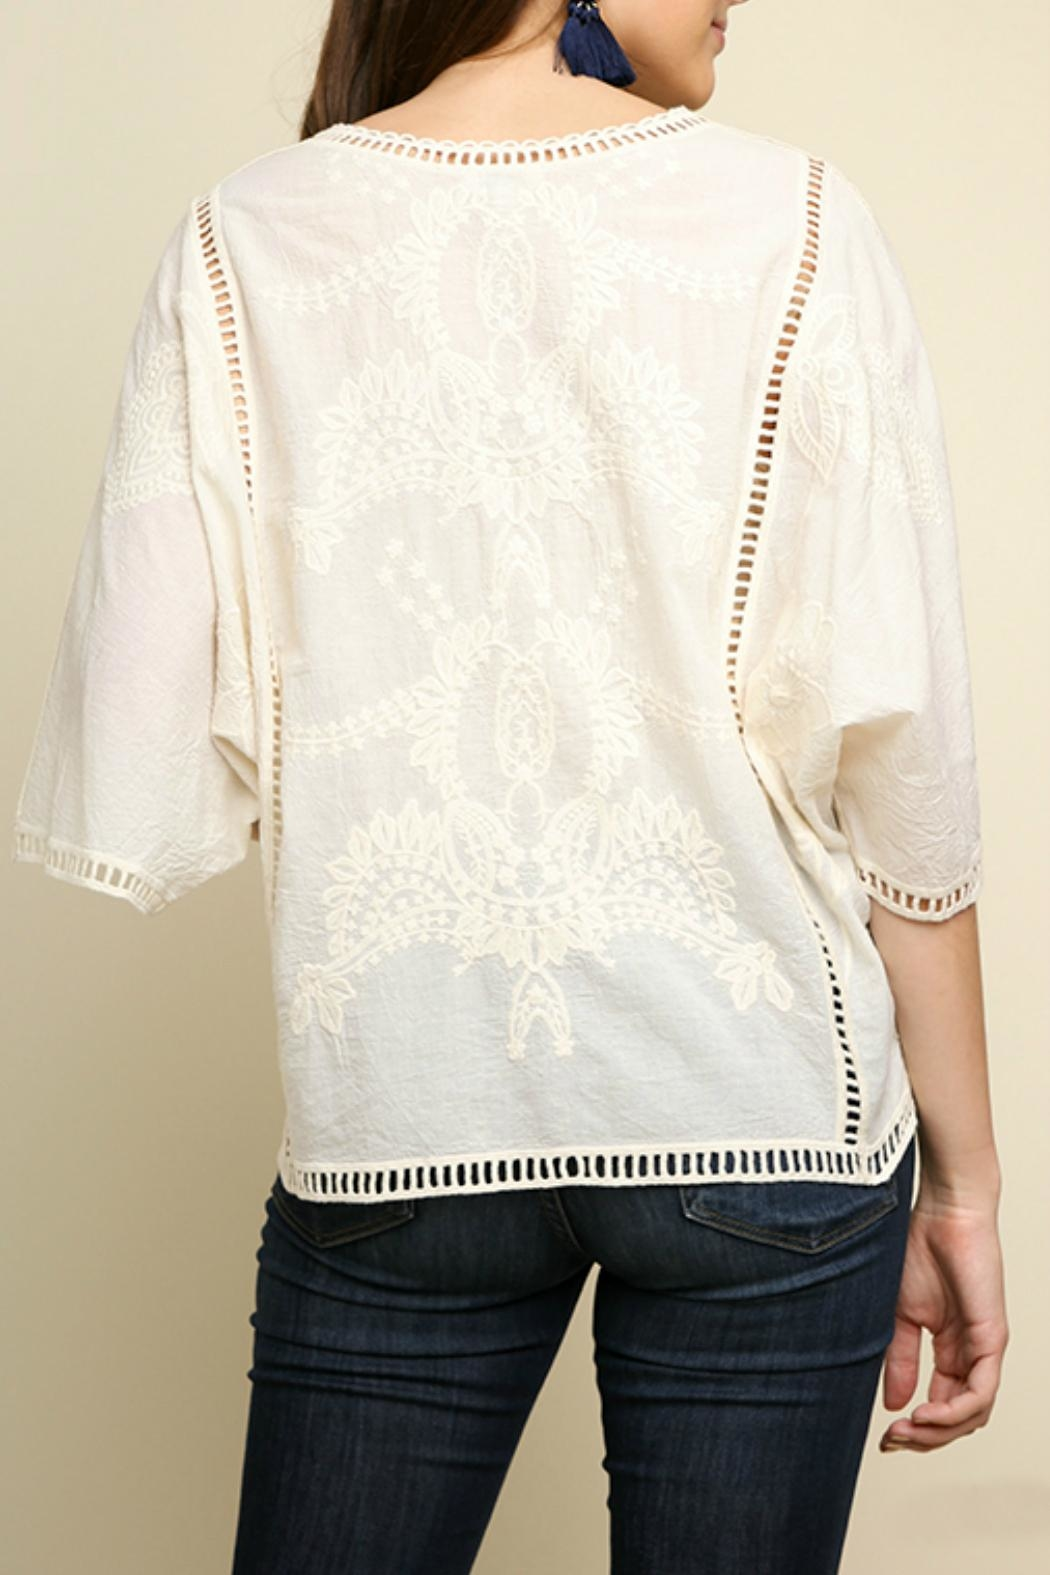 Umgee USA Floral Tonal-Embroidery Top - Front Full Image